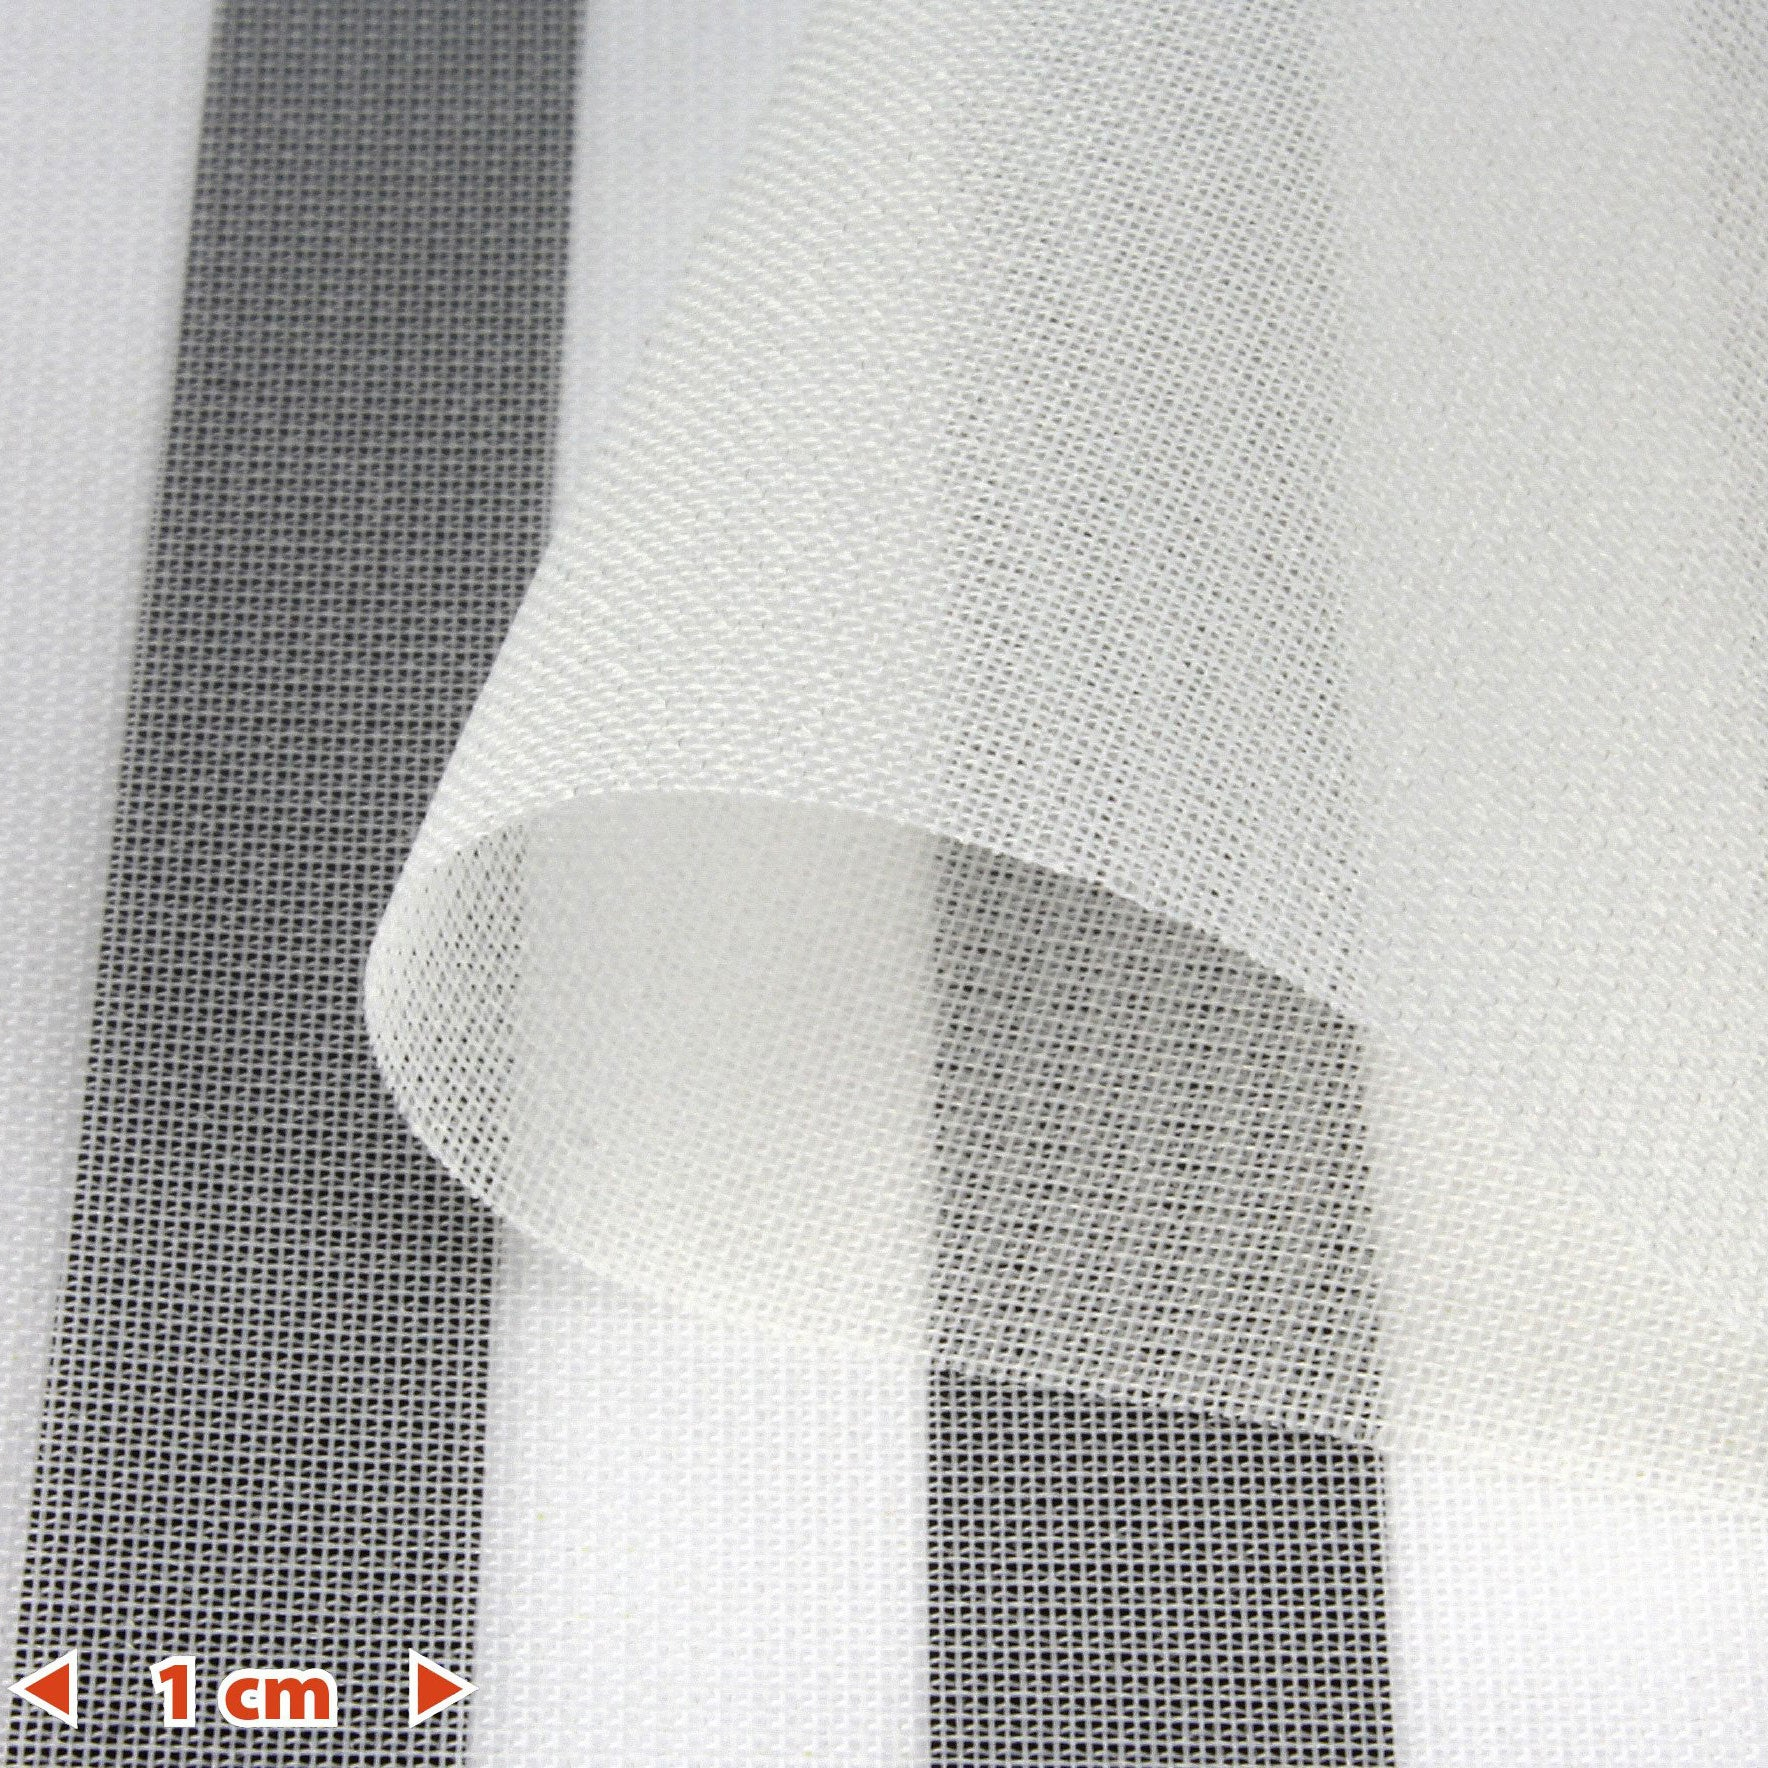 VOILE Shielding Fabric for High Frequency EMF (per metre)